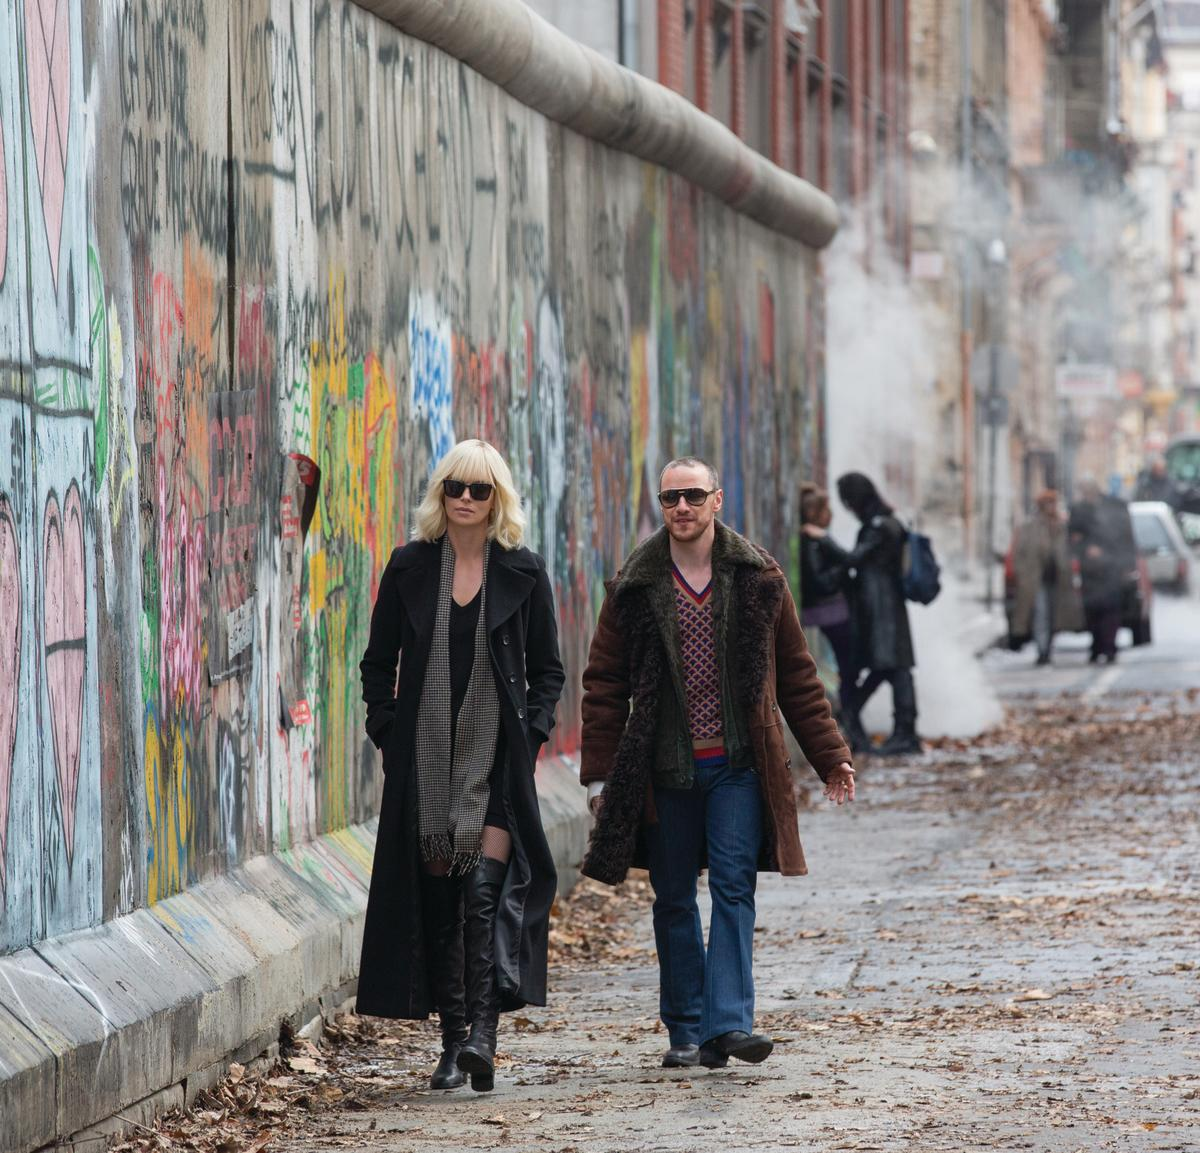 Lorraine and Percival (James McAvoy) in his East Berlin steez. Photo: Jonathan Prime/Focus Features